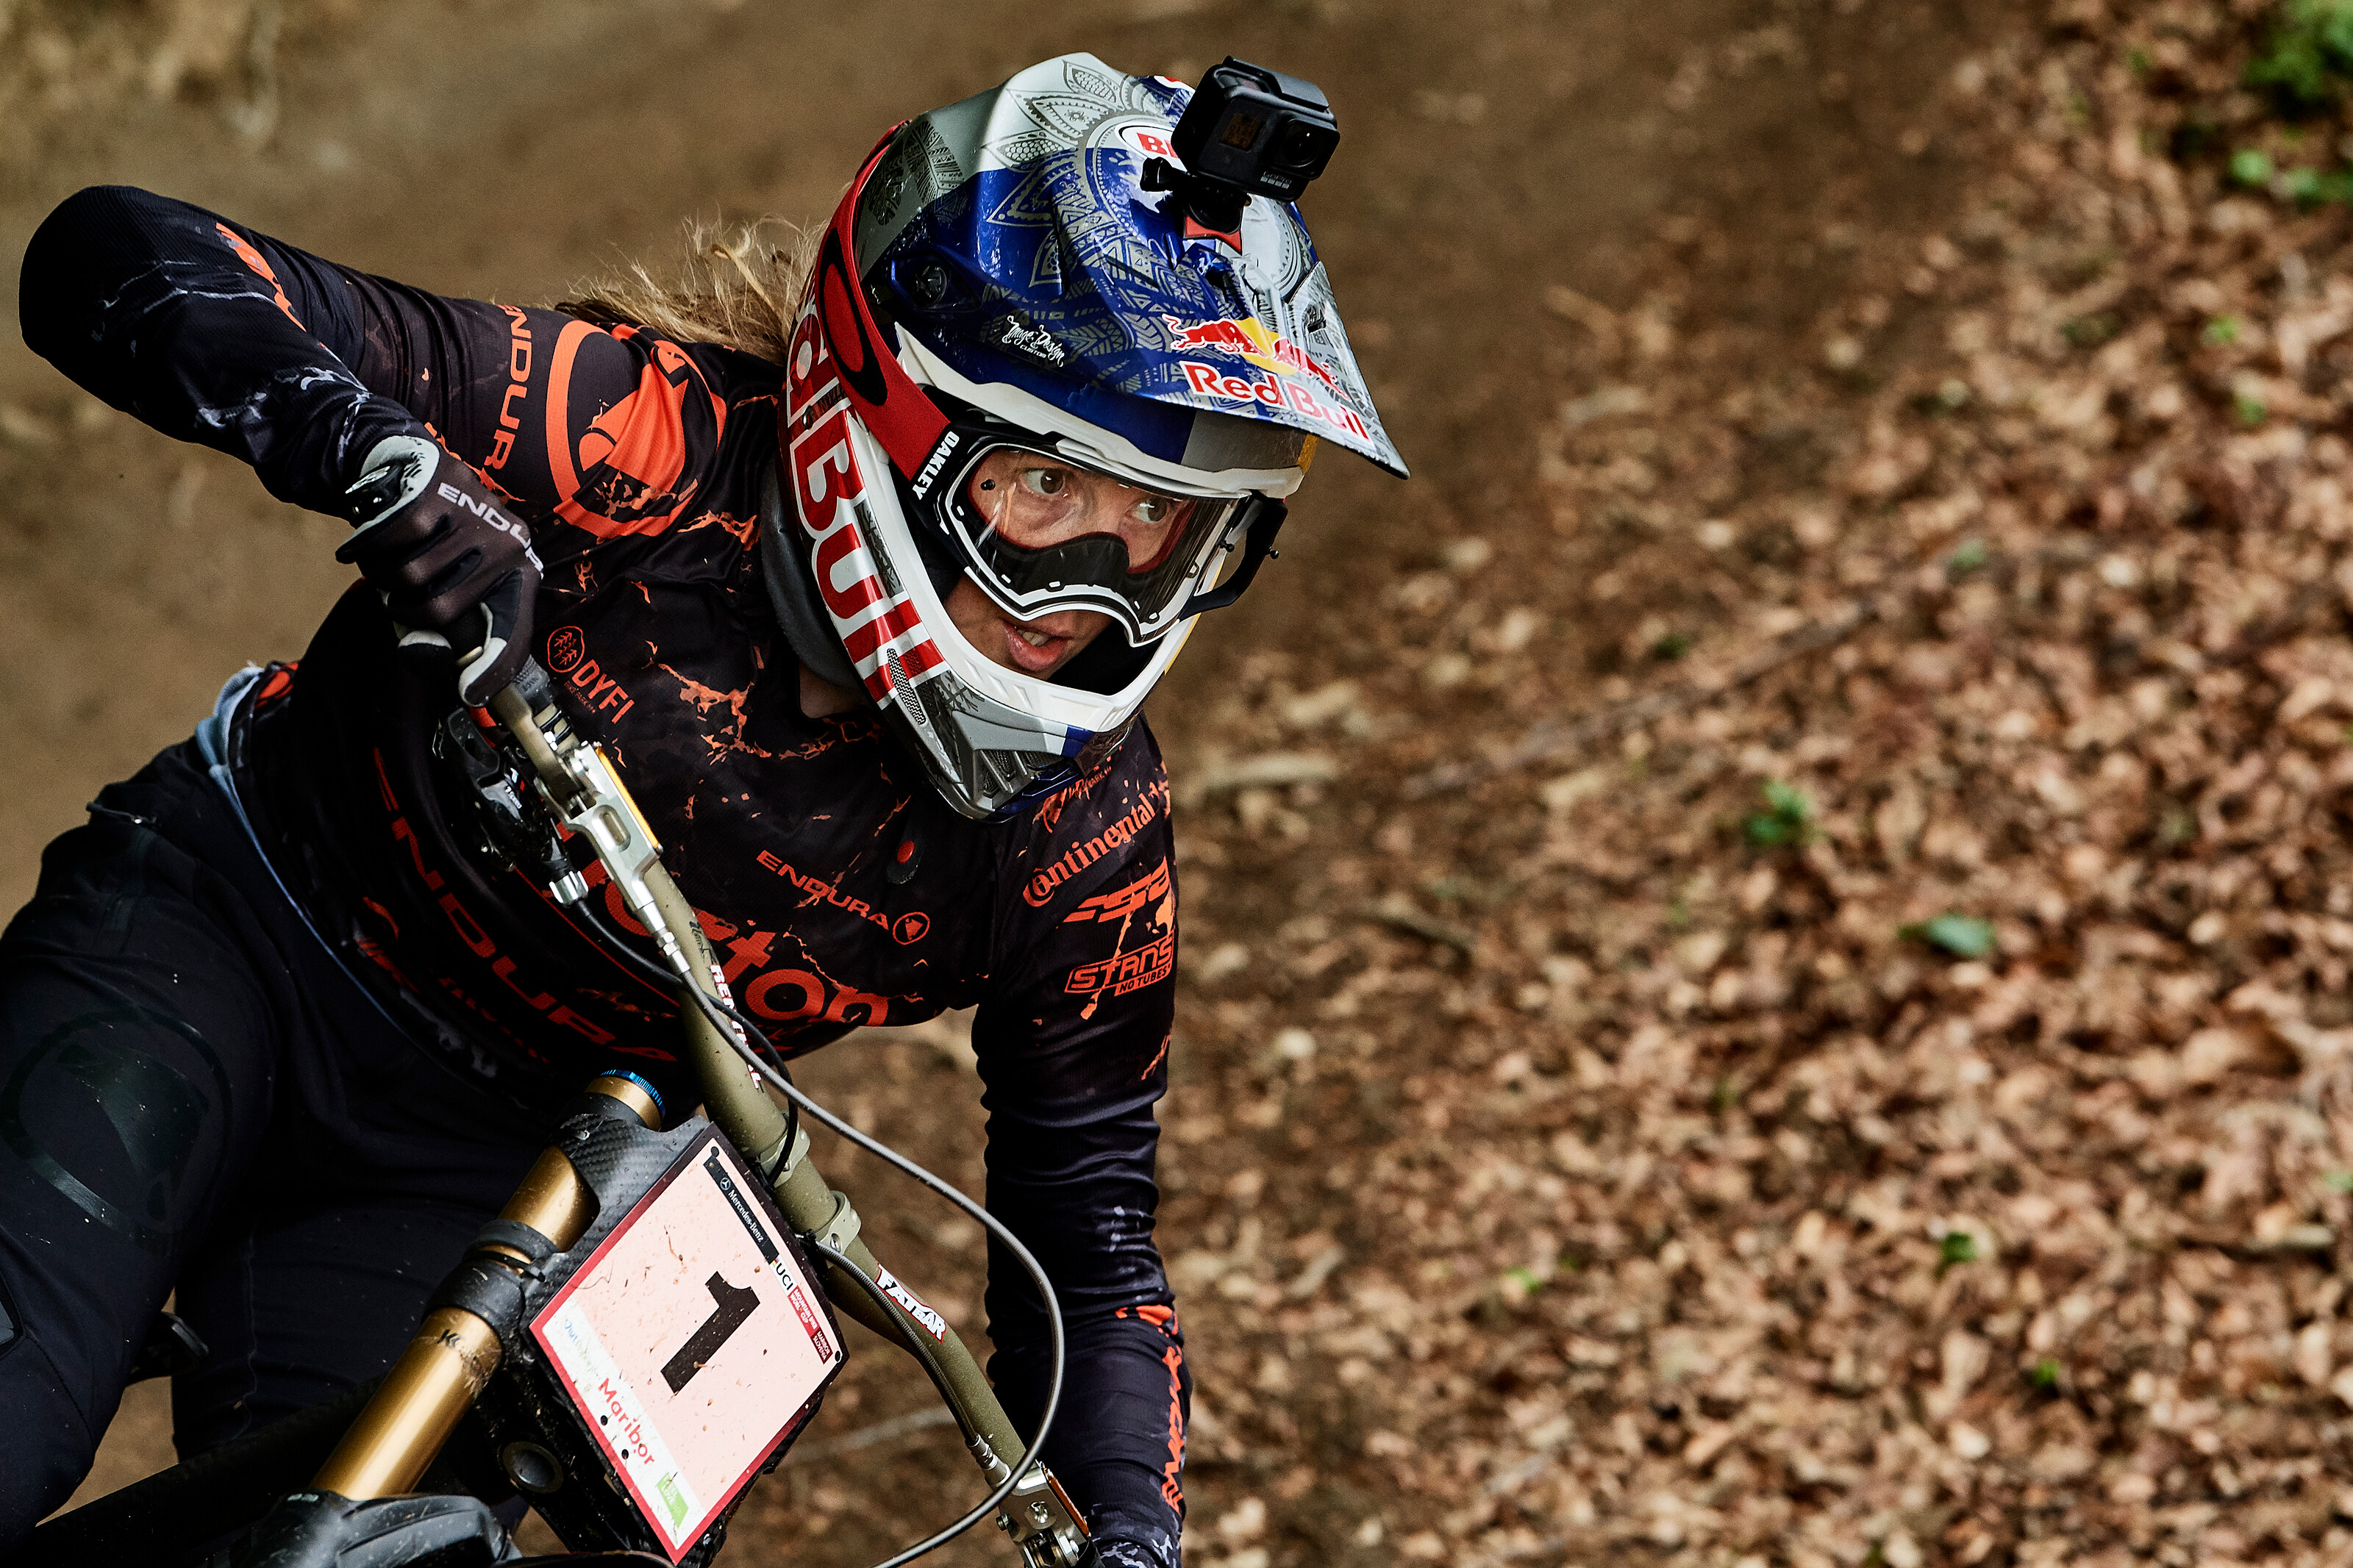 Red Bull Hardline – Rachel Atherton Joins Commentary Team